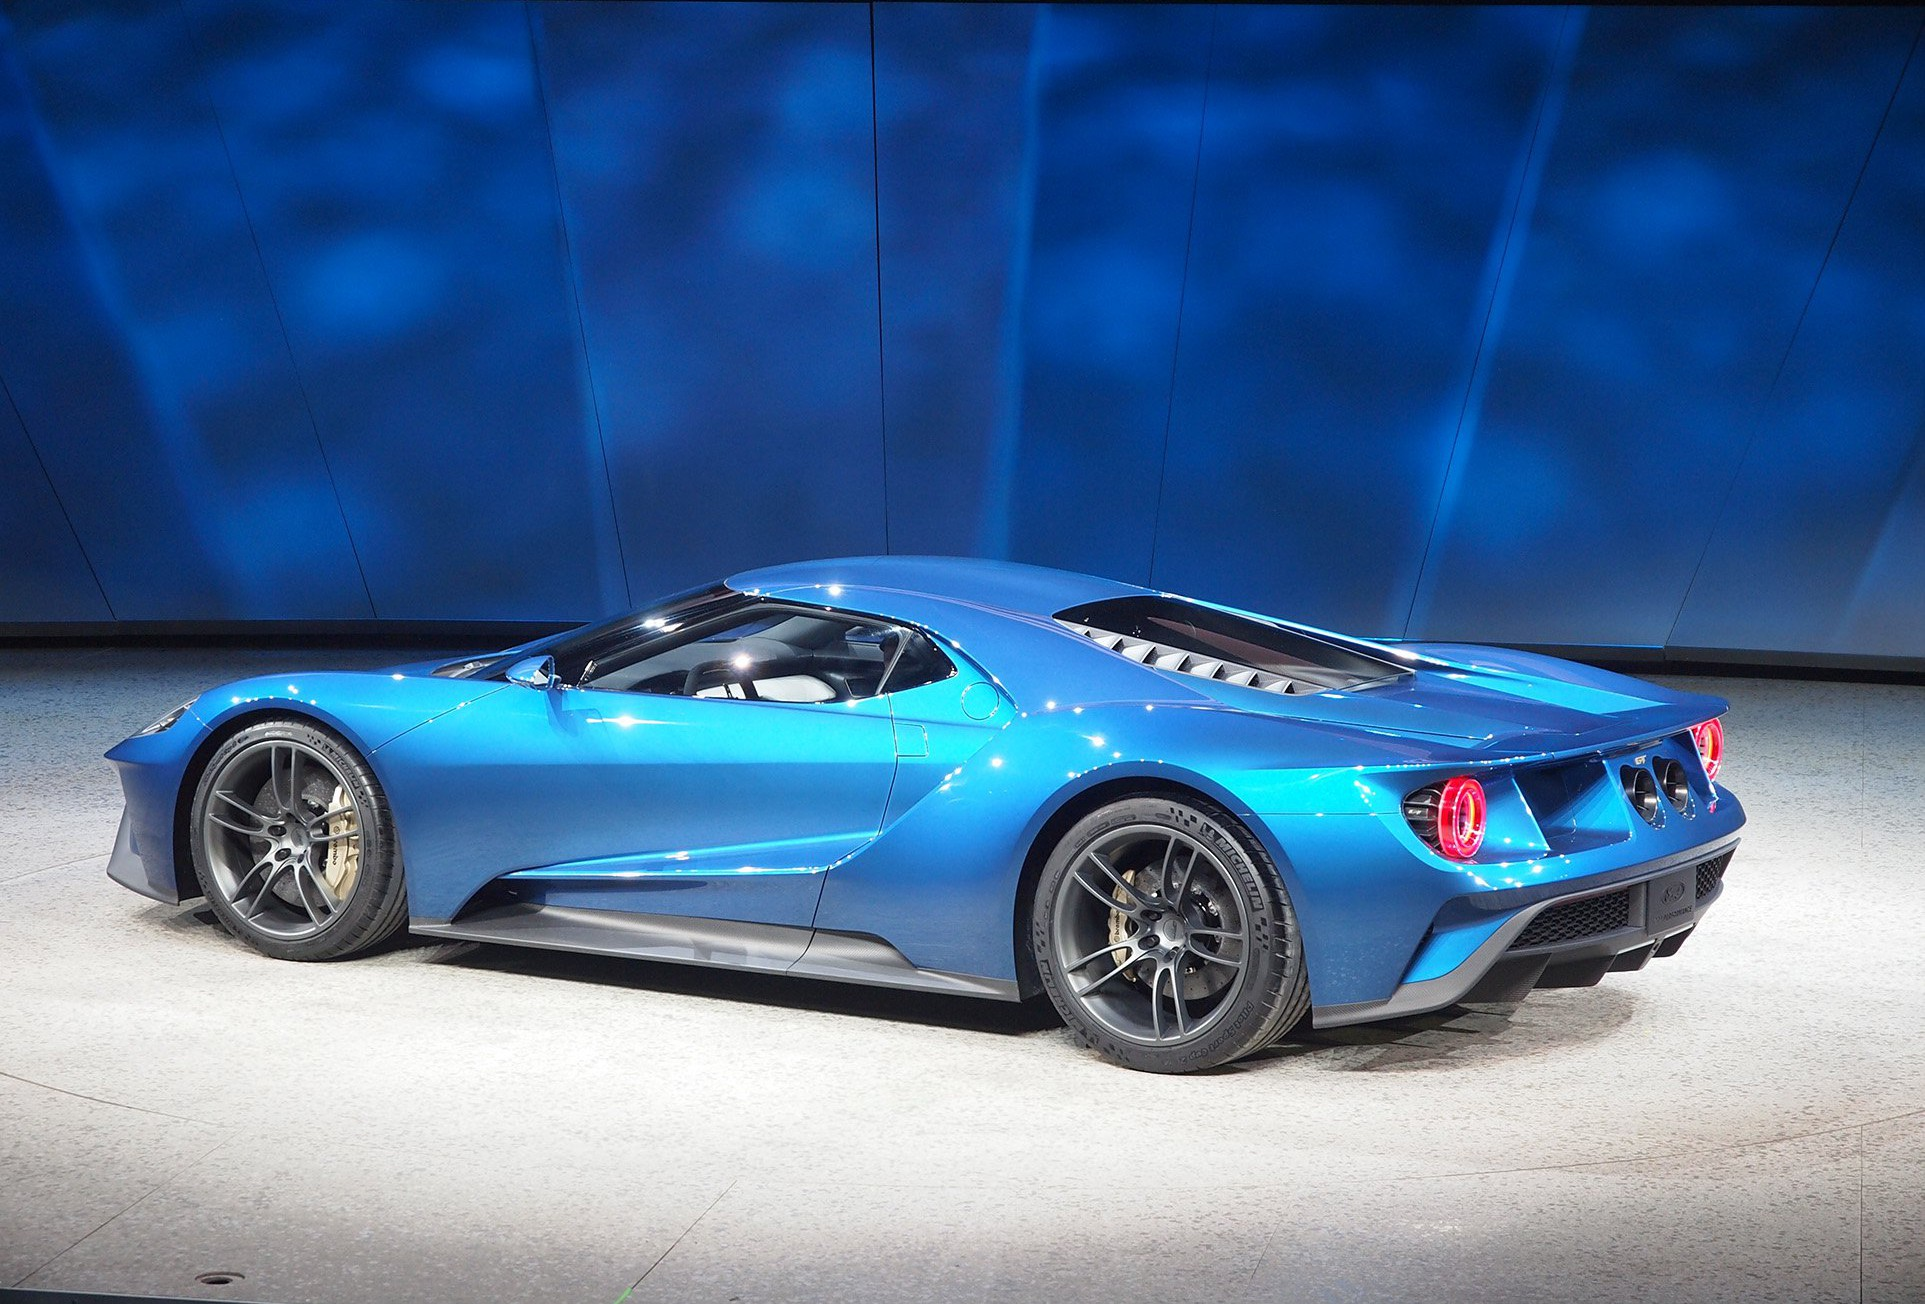 Getting Your Hands on a Ford GT Will Be Almost Impossible—Here's Why